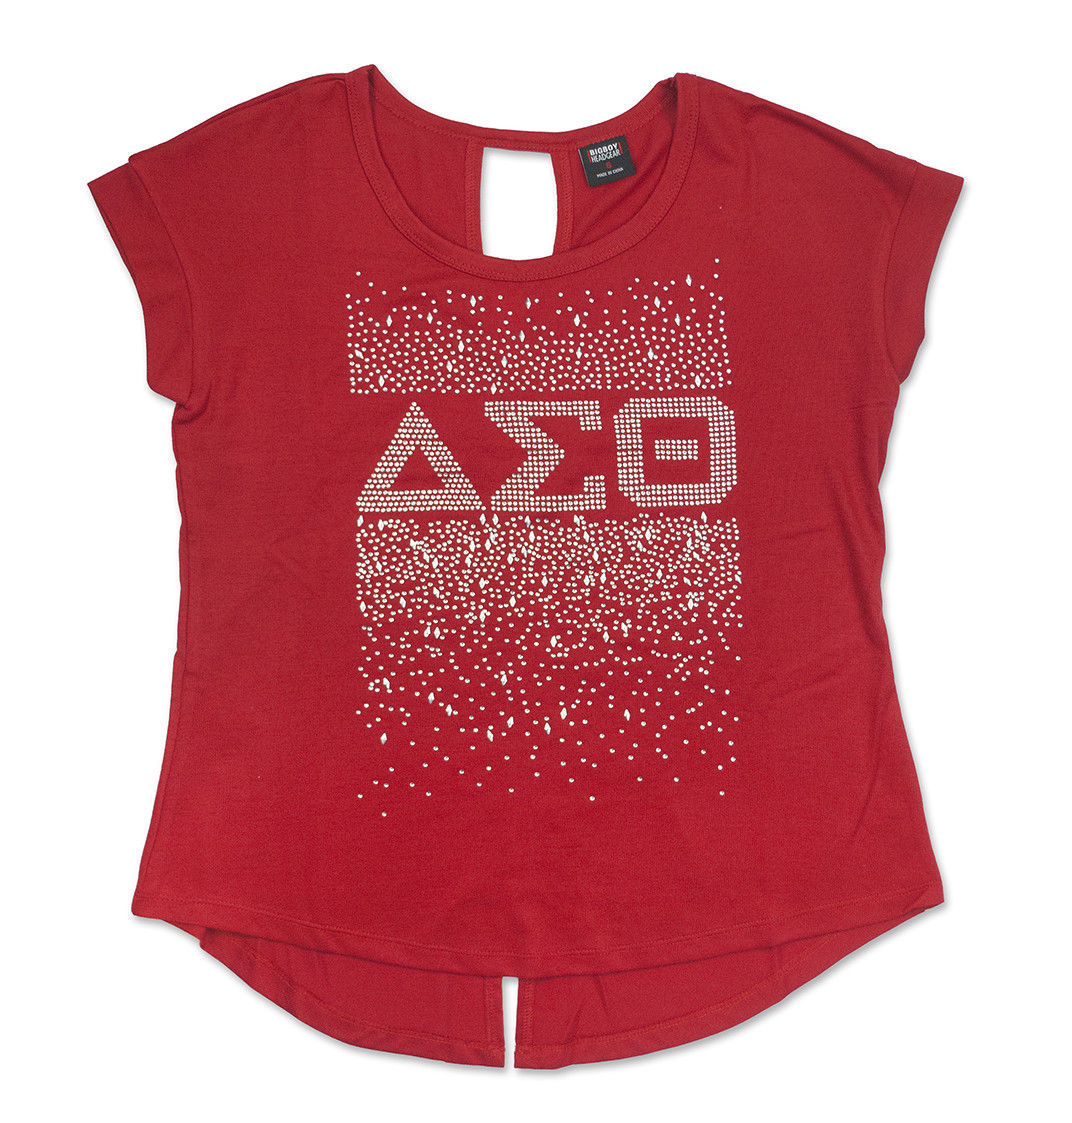 DELTA DIVA SORORITY T-SHIRT DELTA SIGMA 1913 THETA OOO-OOP RED BLING BLOUSE TOP